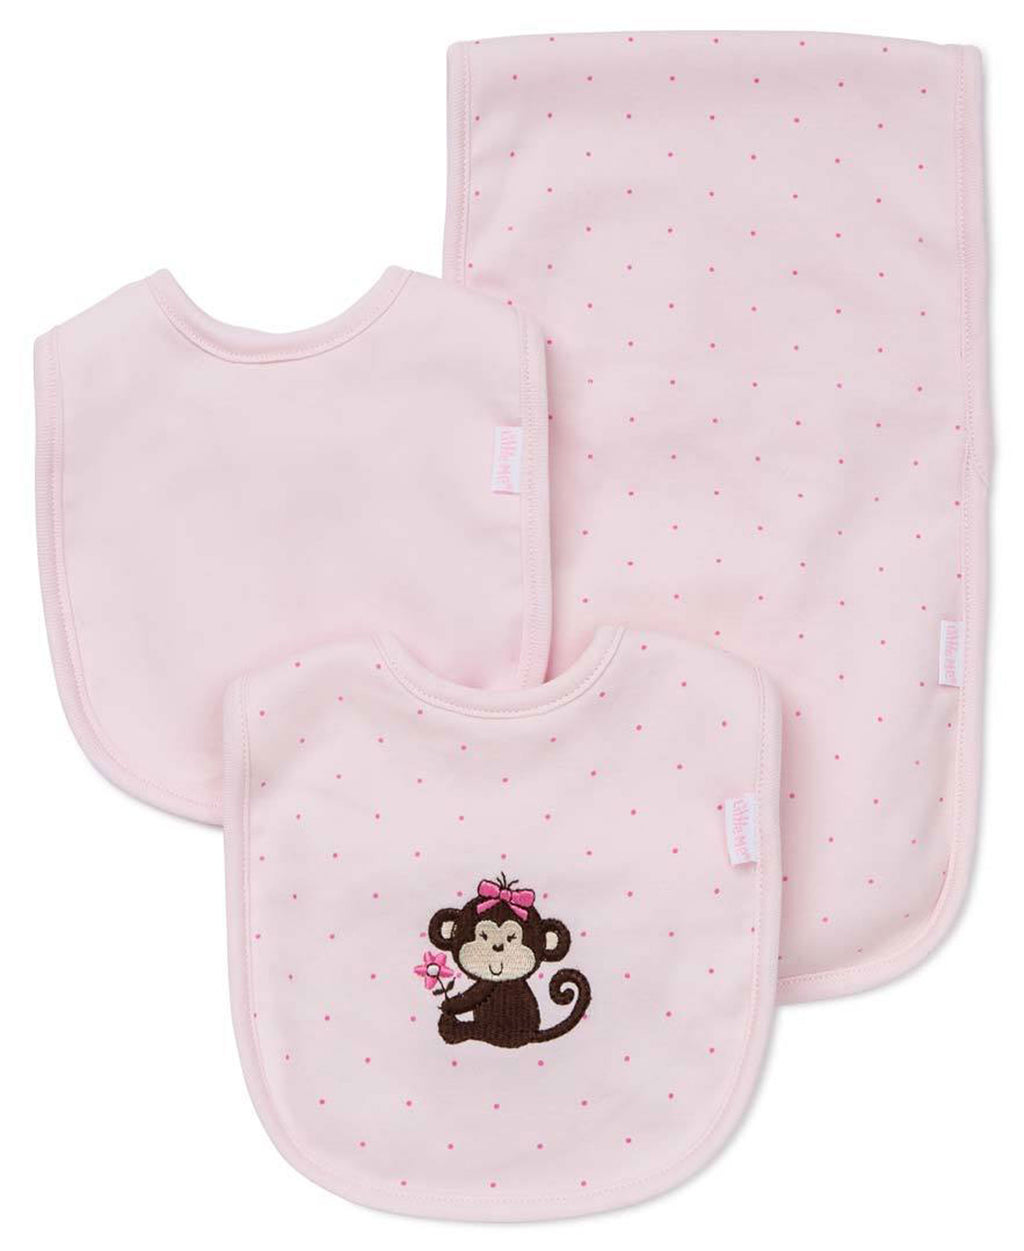 Pretty Monkey Bib & Burp Set